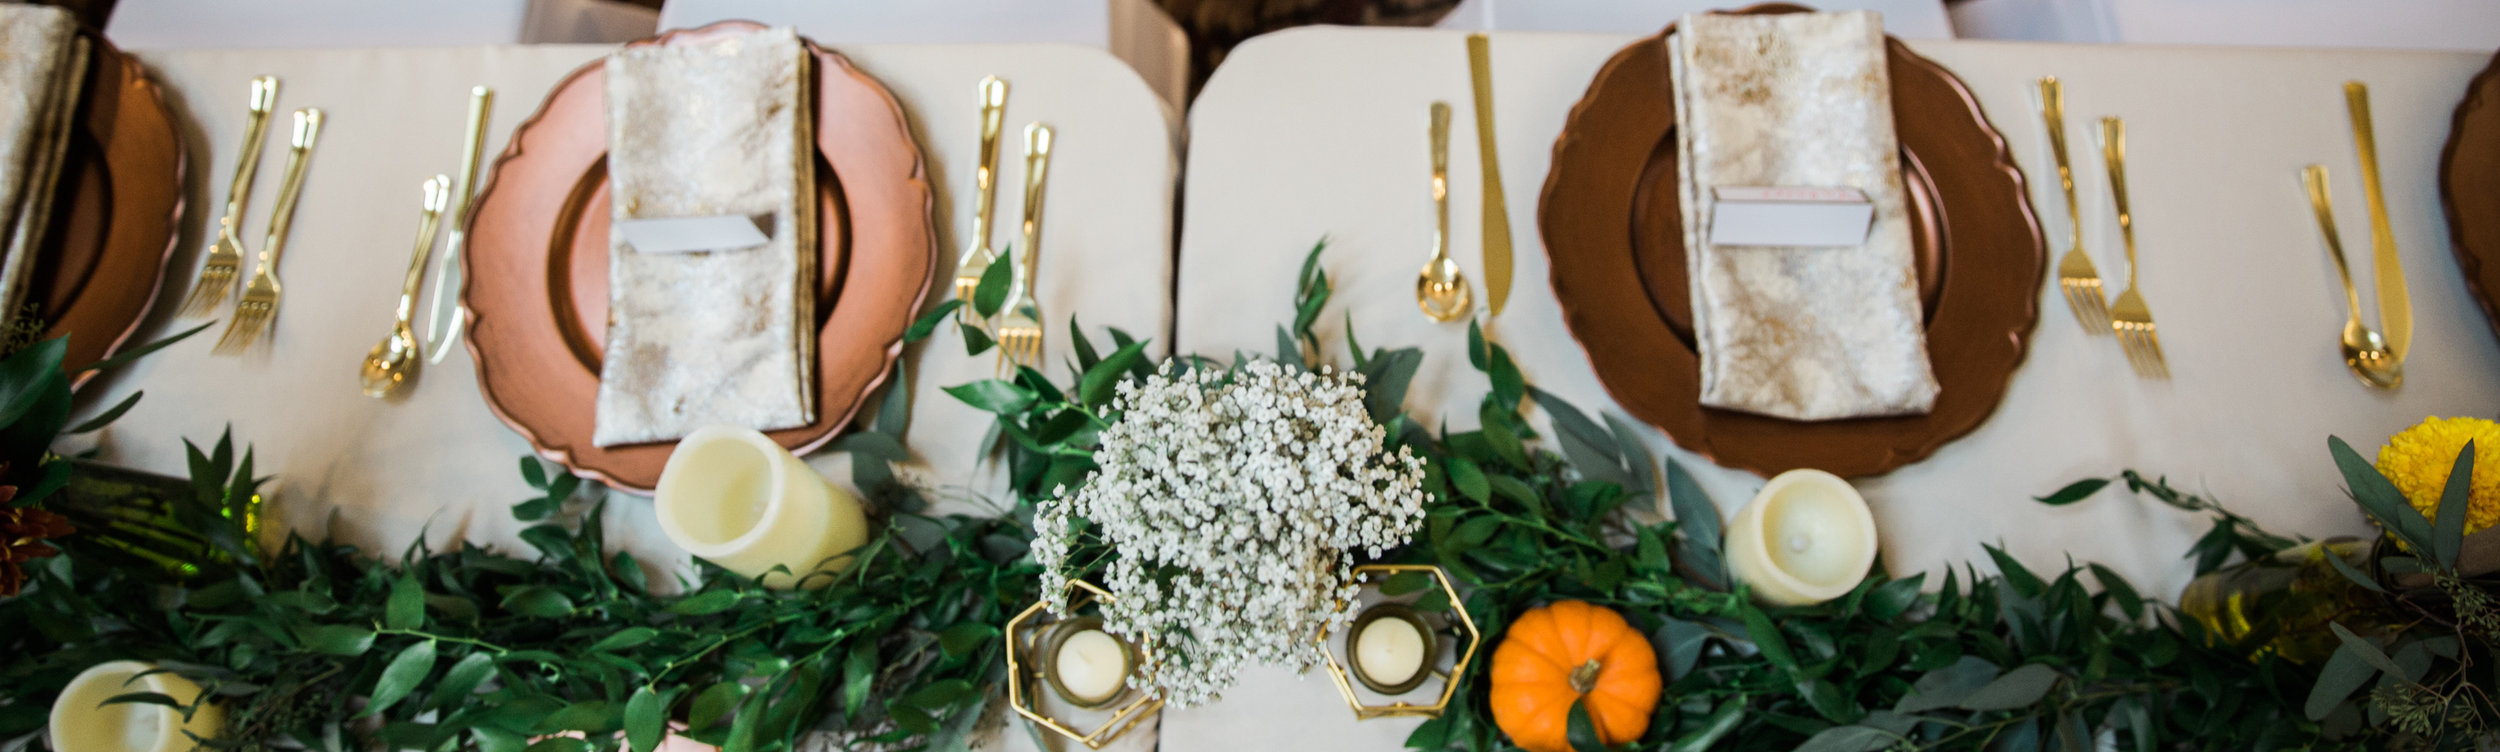 Pumpkin Spice Autumn Wedding At Amherst House Columbia Maryland by Megapixels Media Photography Baltimore Wedding Photographers with Gilly and Justin-28.jpg